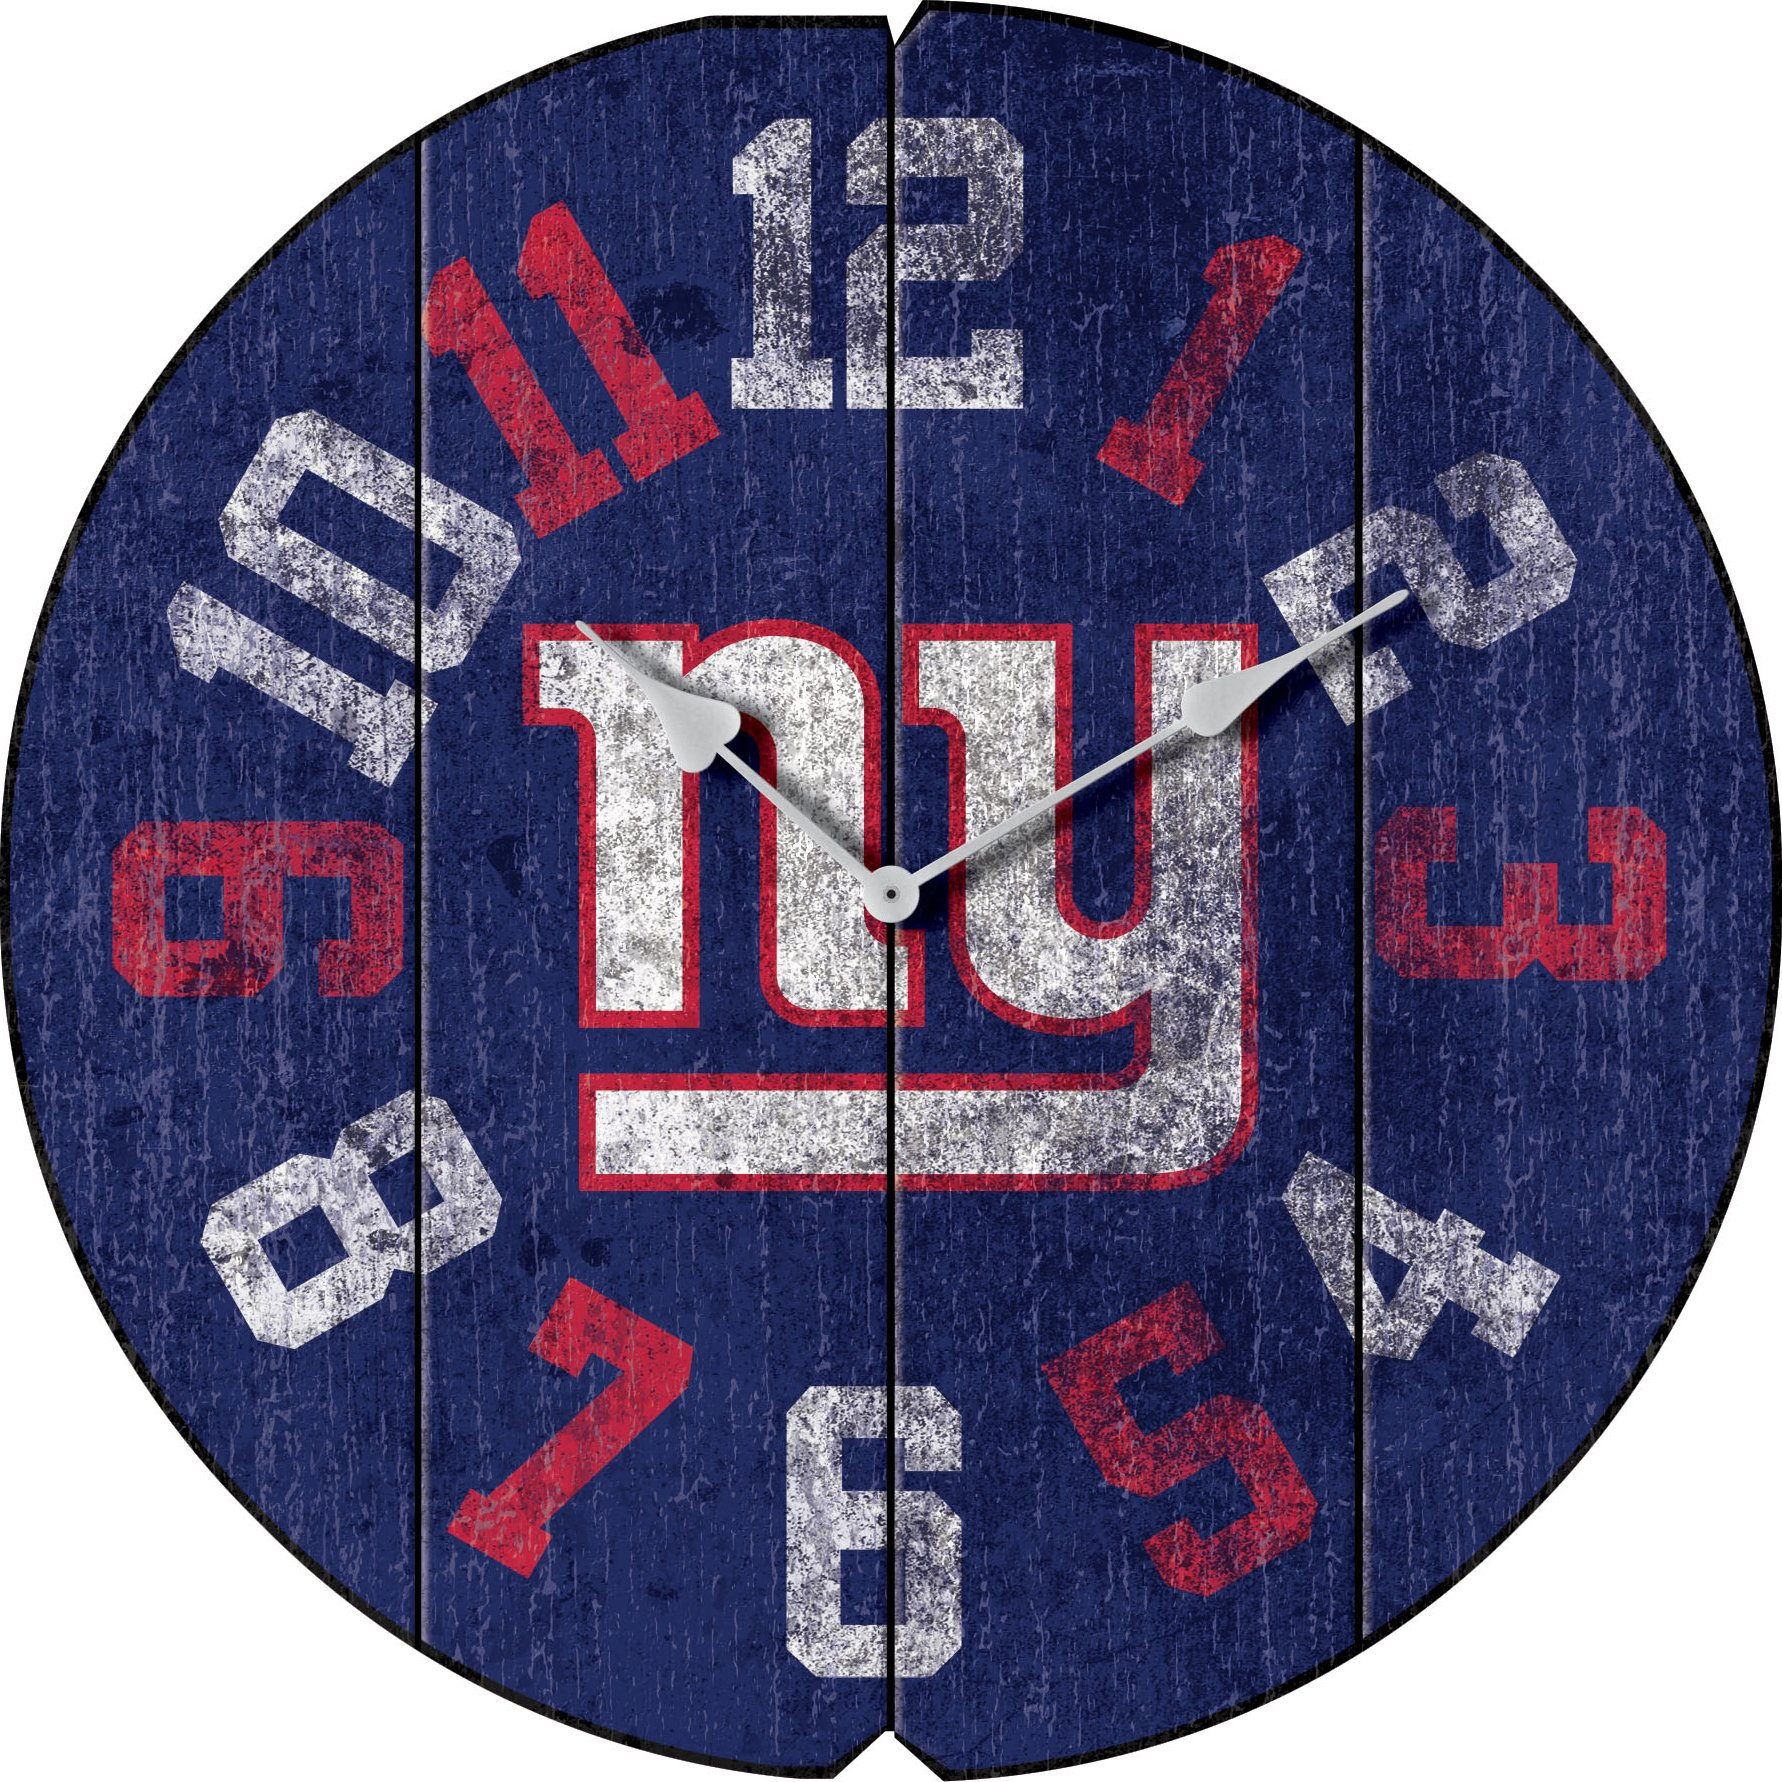 Imperial Officially Licensed NFL Merchandise: Vintage Round Clock, New York Giants by Imperial